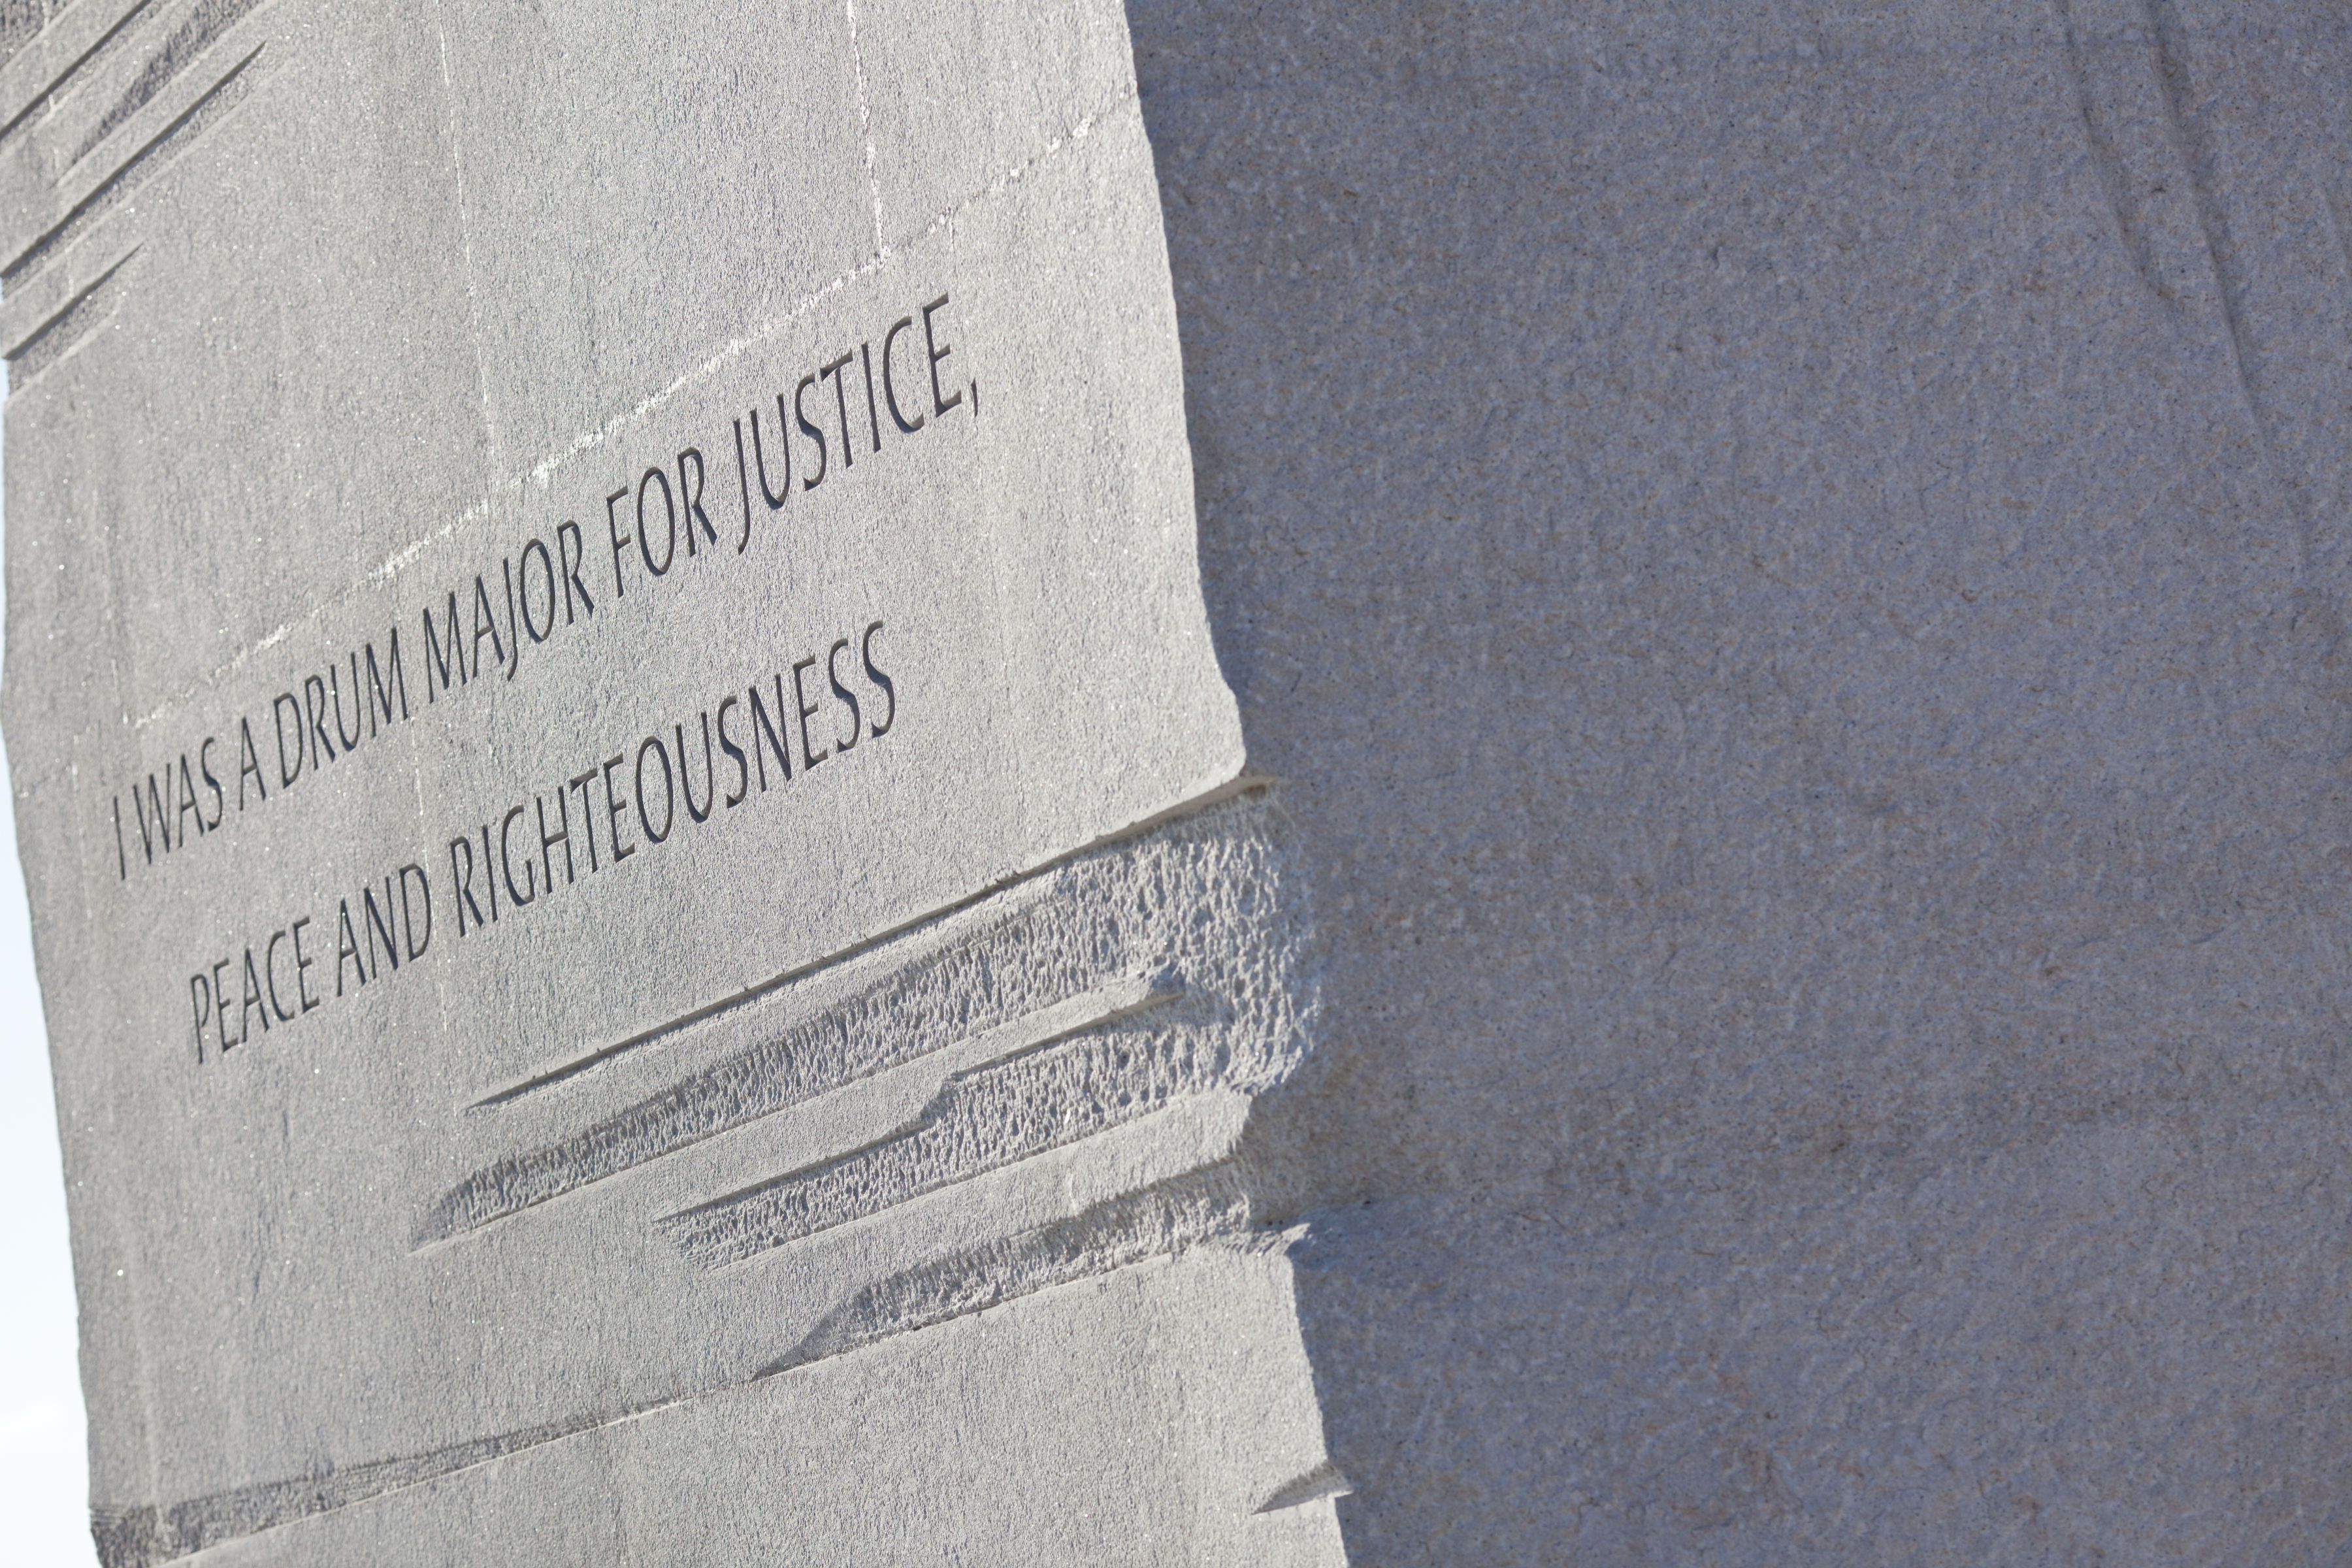 Paraphrased quote on the Martin Luther King Jr. memorial in Washington, DC, January 2012